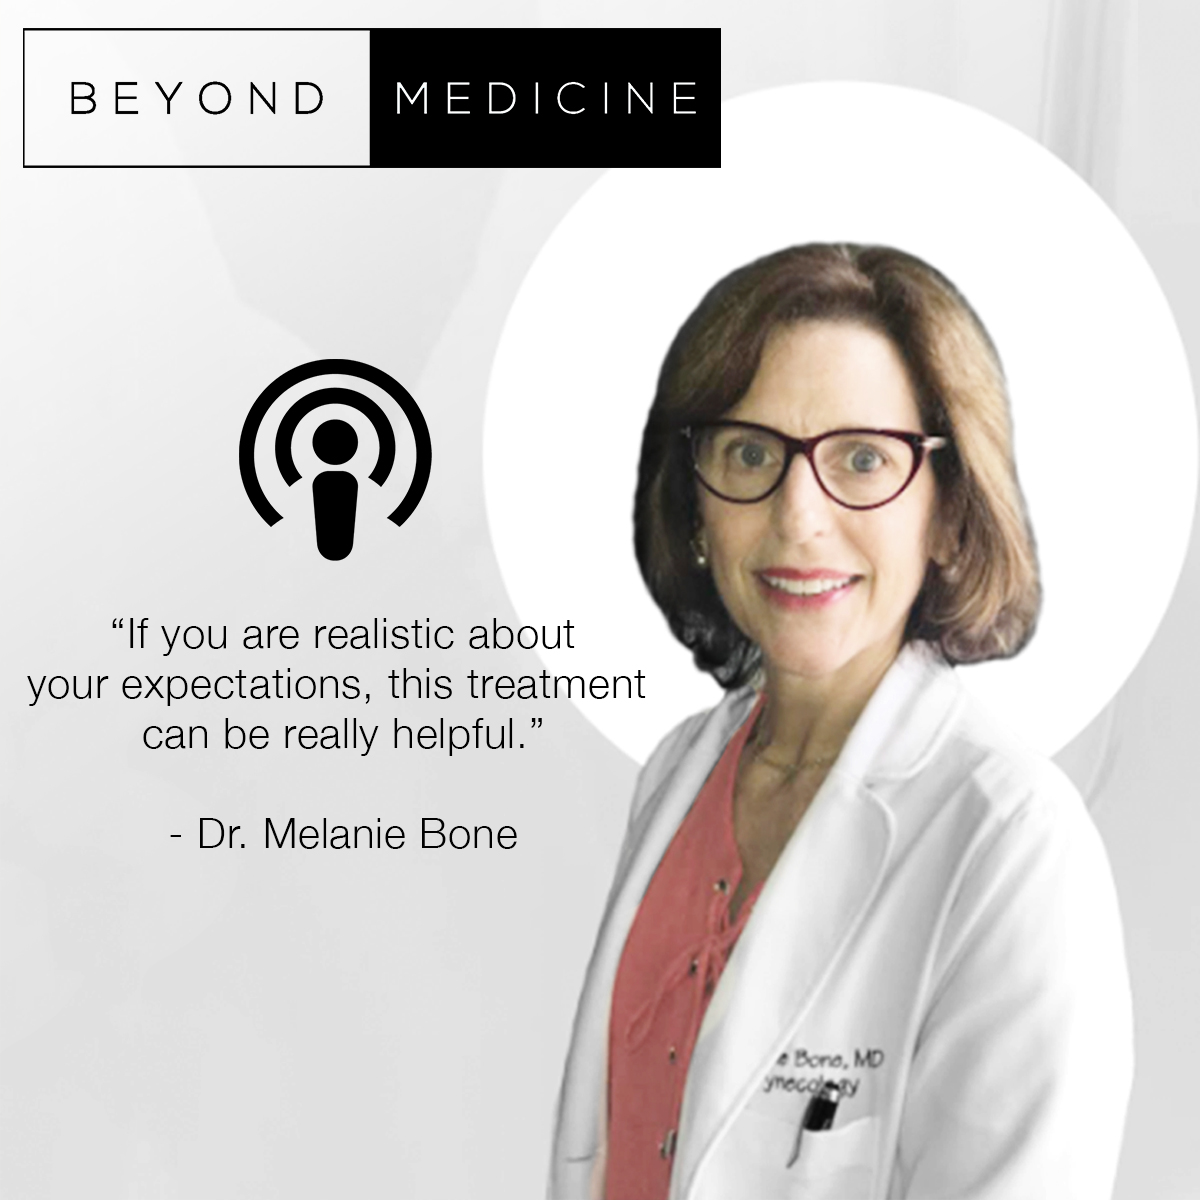 Medical Marijuana - Dr. Bone is board certified in Obstetrics & Gynecology. She is a national speaker on hereditary cancer syndromes and actively practices gynecologic surgery with expertise in minimally-invasive laparoscopic surgery, menopause, cancer risk assessment, solutions and support.medical marijuana provider, Dr. Bone has come to believe in the importance of the endocannabinoid system and the role all types of phytotherapies play in health. https://www.drmelaniebone.com/